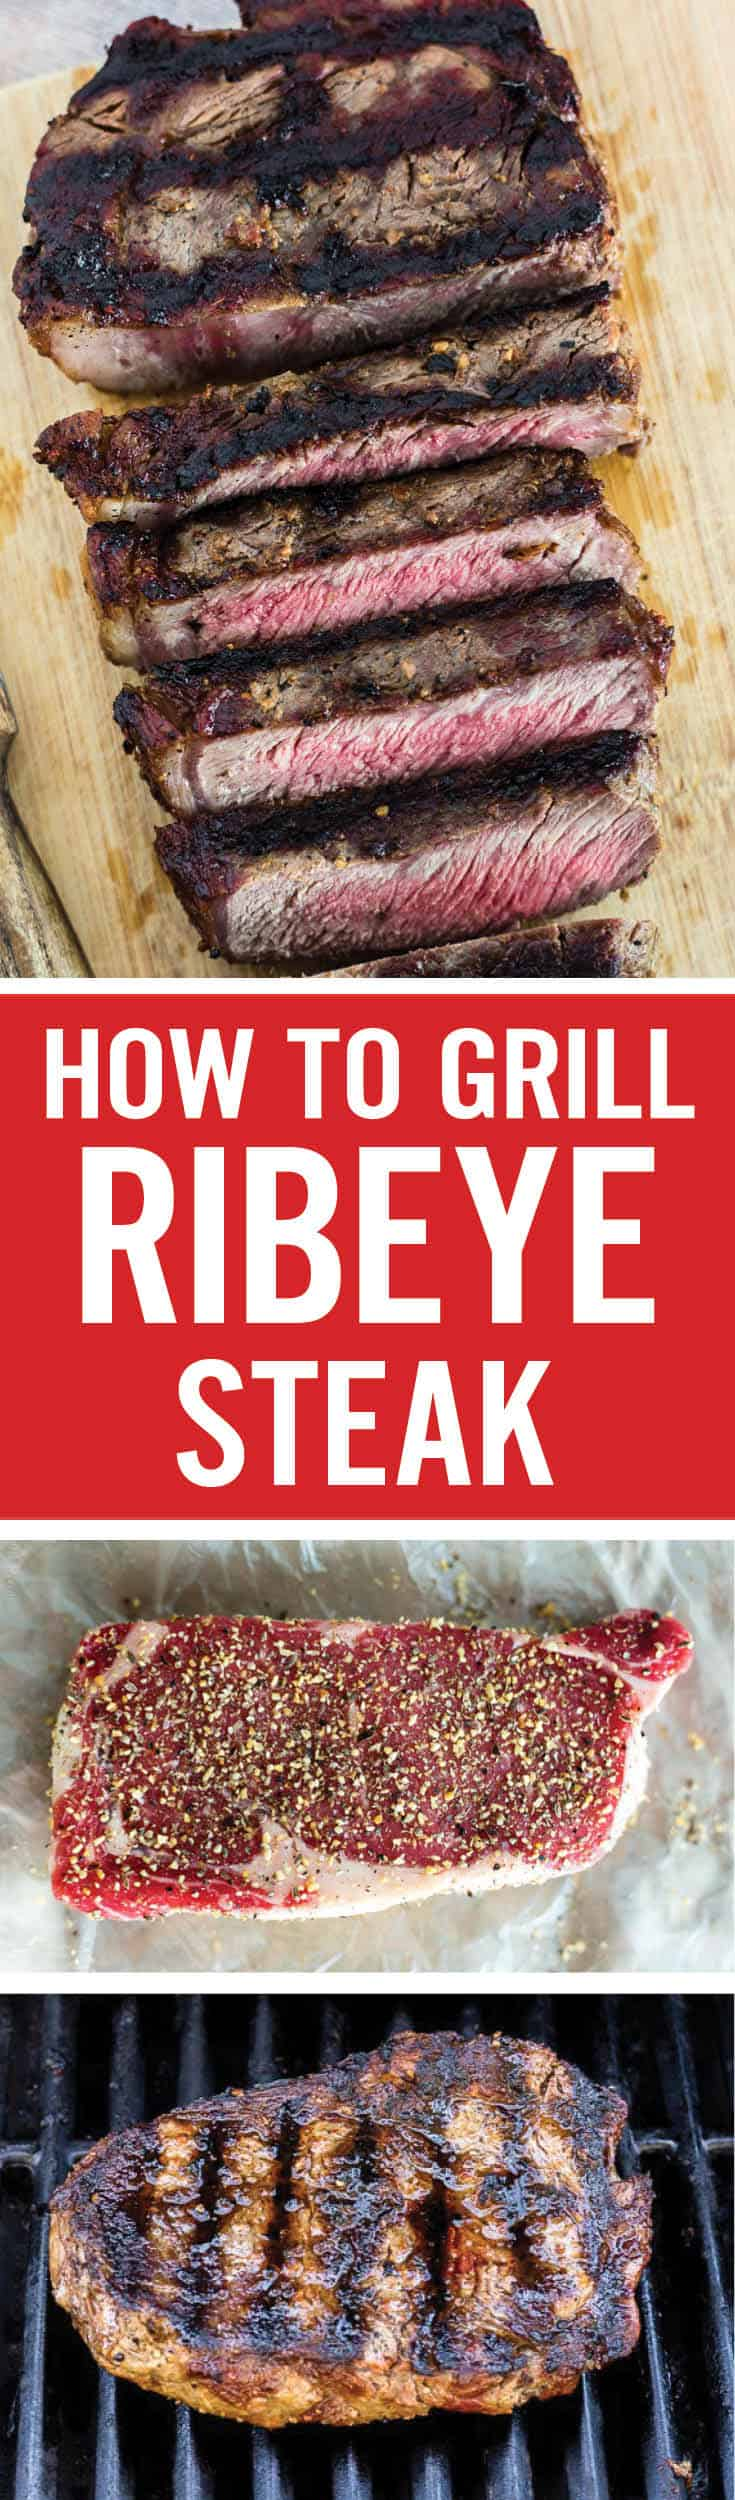 How to Grill Ribeye Steak (Guaranteed Moist and Tender)